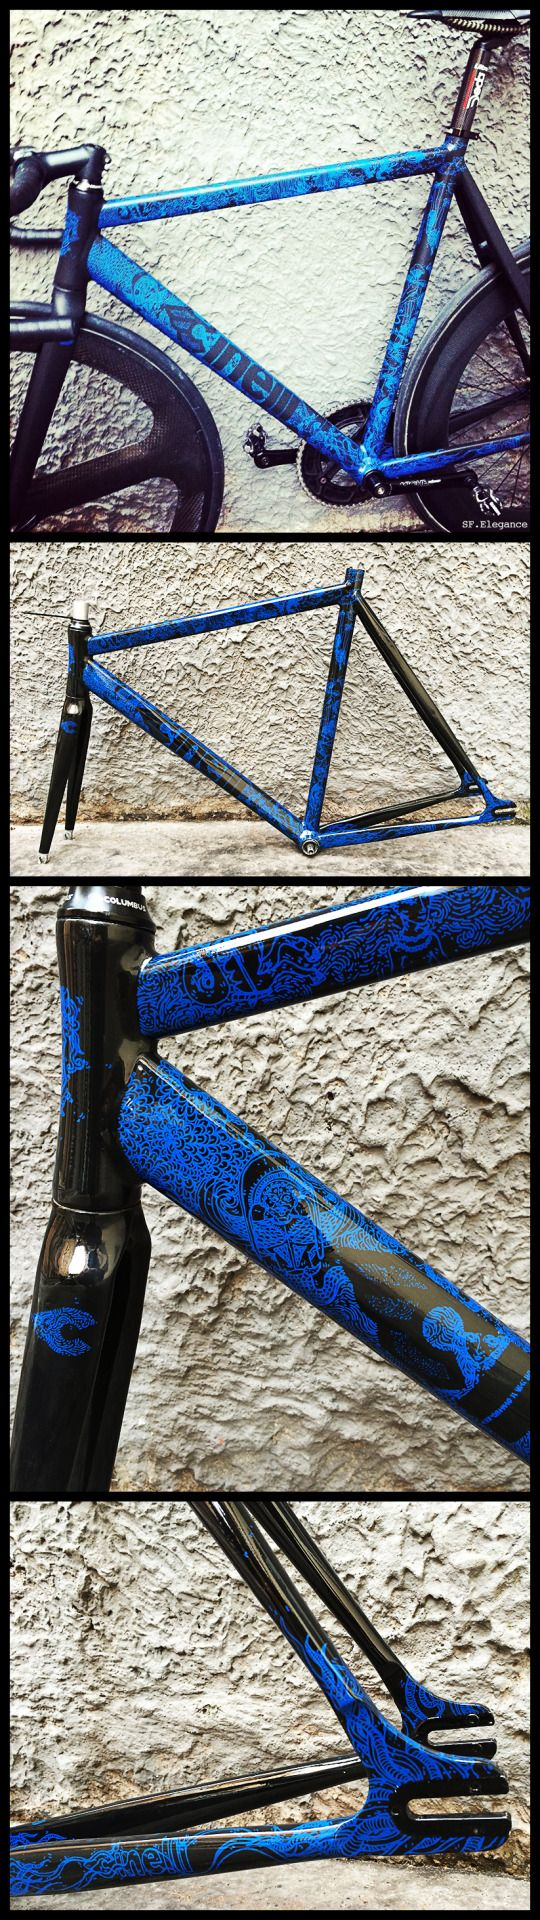 """sf-elegance: """"As promised the details of the CINELLI Mash Histogram…Artwork by the French Lab: NUAN-C… www.nuan-c.com """""""